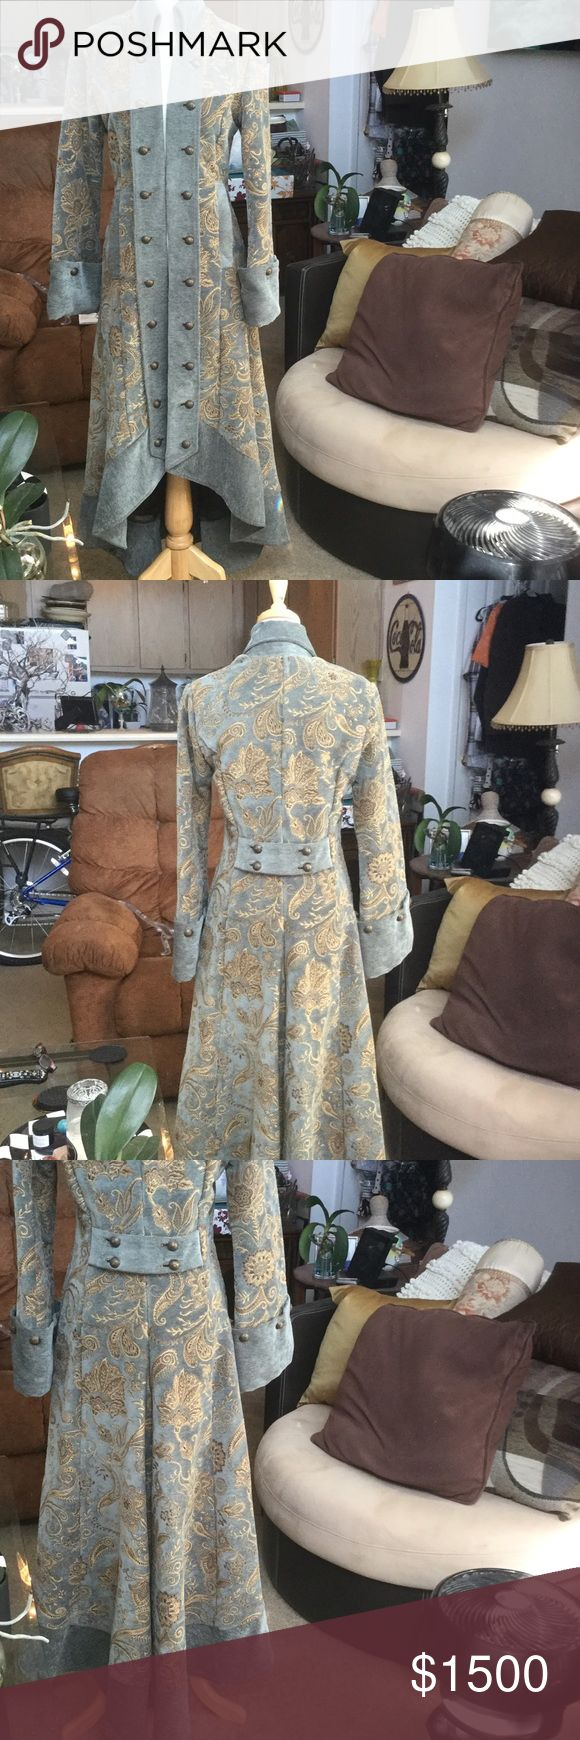 CUTOM MADE STEAMPUNK JACKET Absolutely exquisite custom-made steam punk full length coat. Fully lined. This is Stunning on. All low ball offers will not be considered. Jackets & Coats